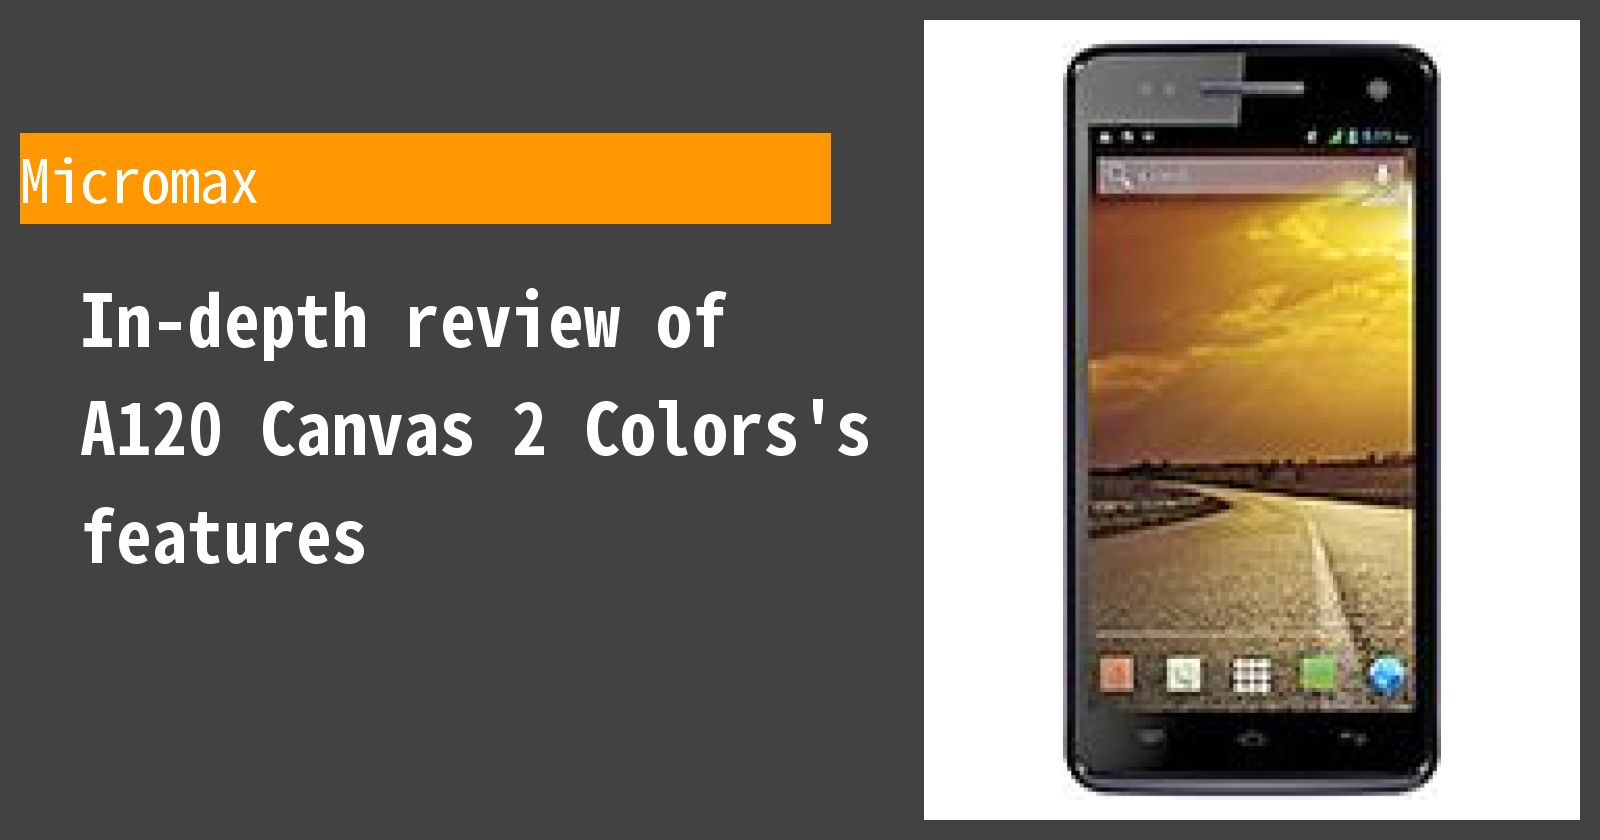 What are the advantages and disadvantages of A120 Canvas 2 Colors? A